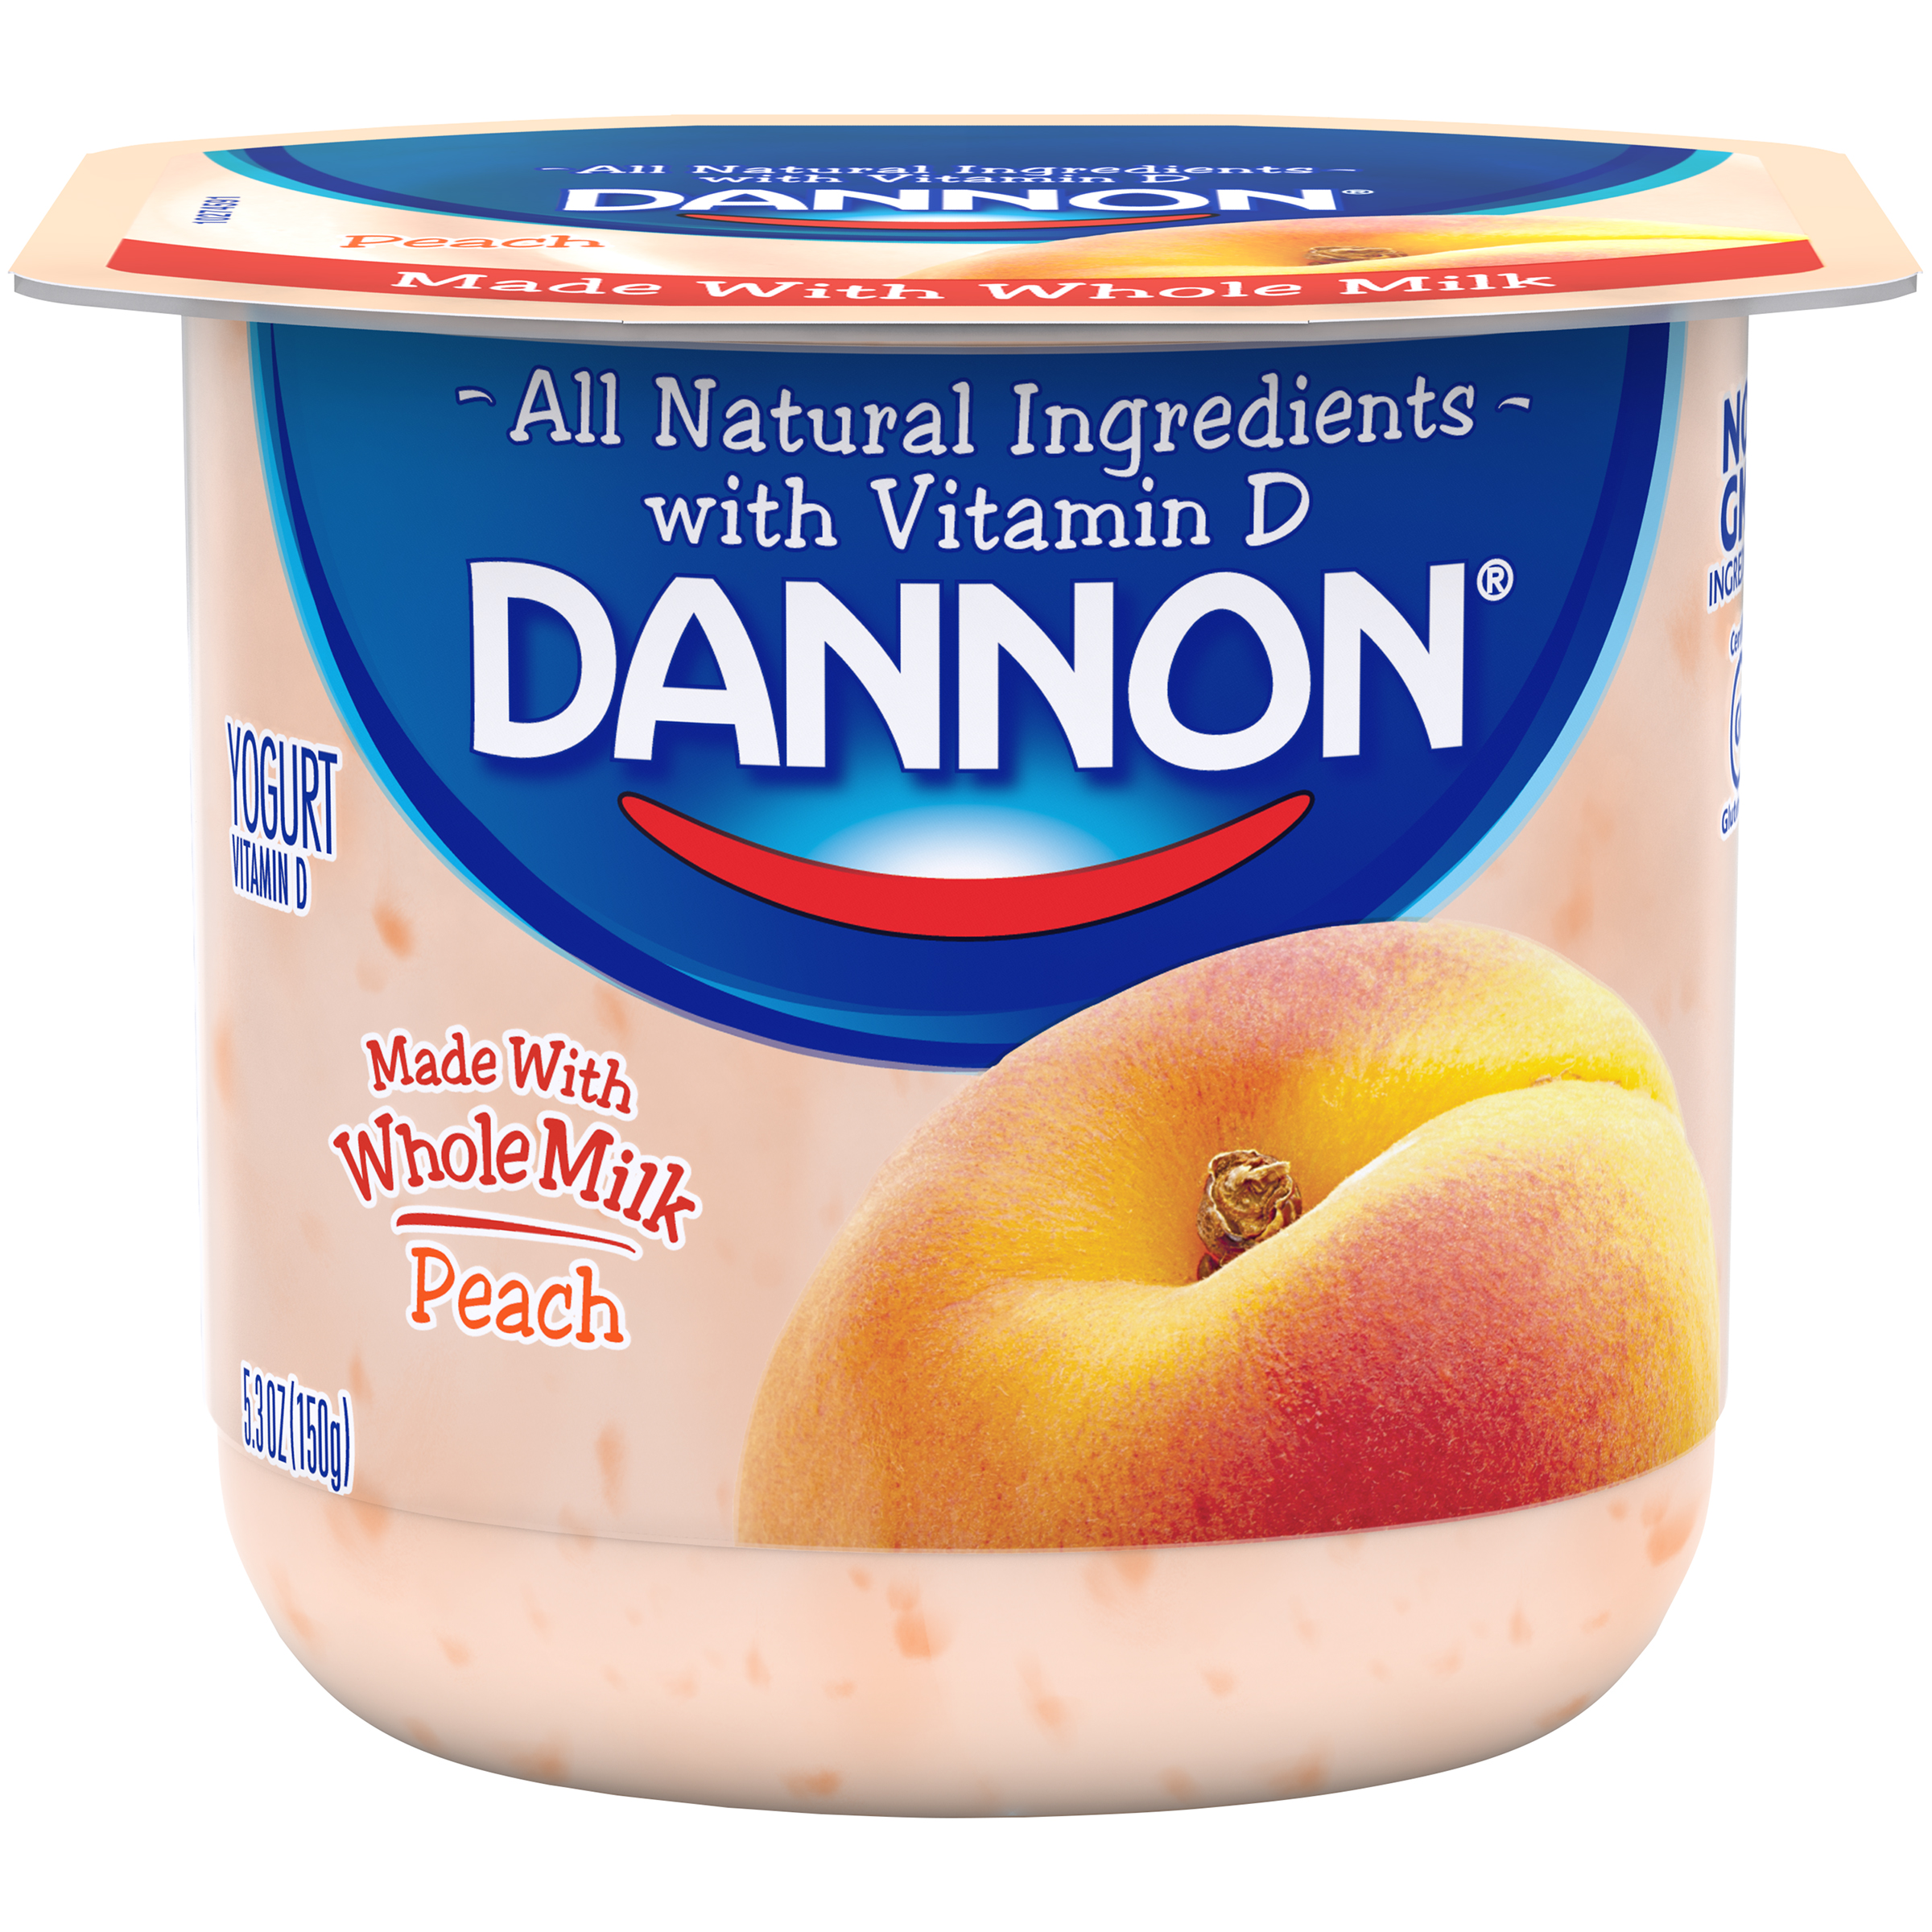 I LOVE Dannon's Pledge to Naturality #KnowYourYogurt